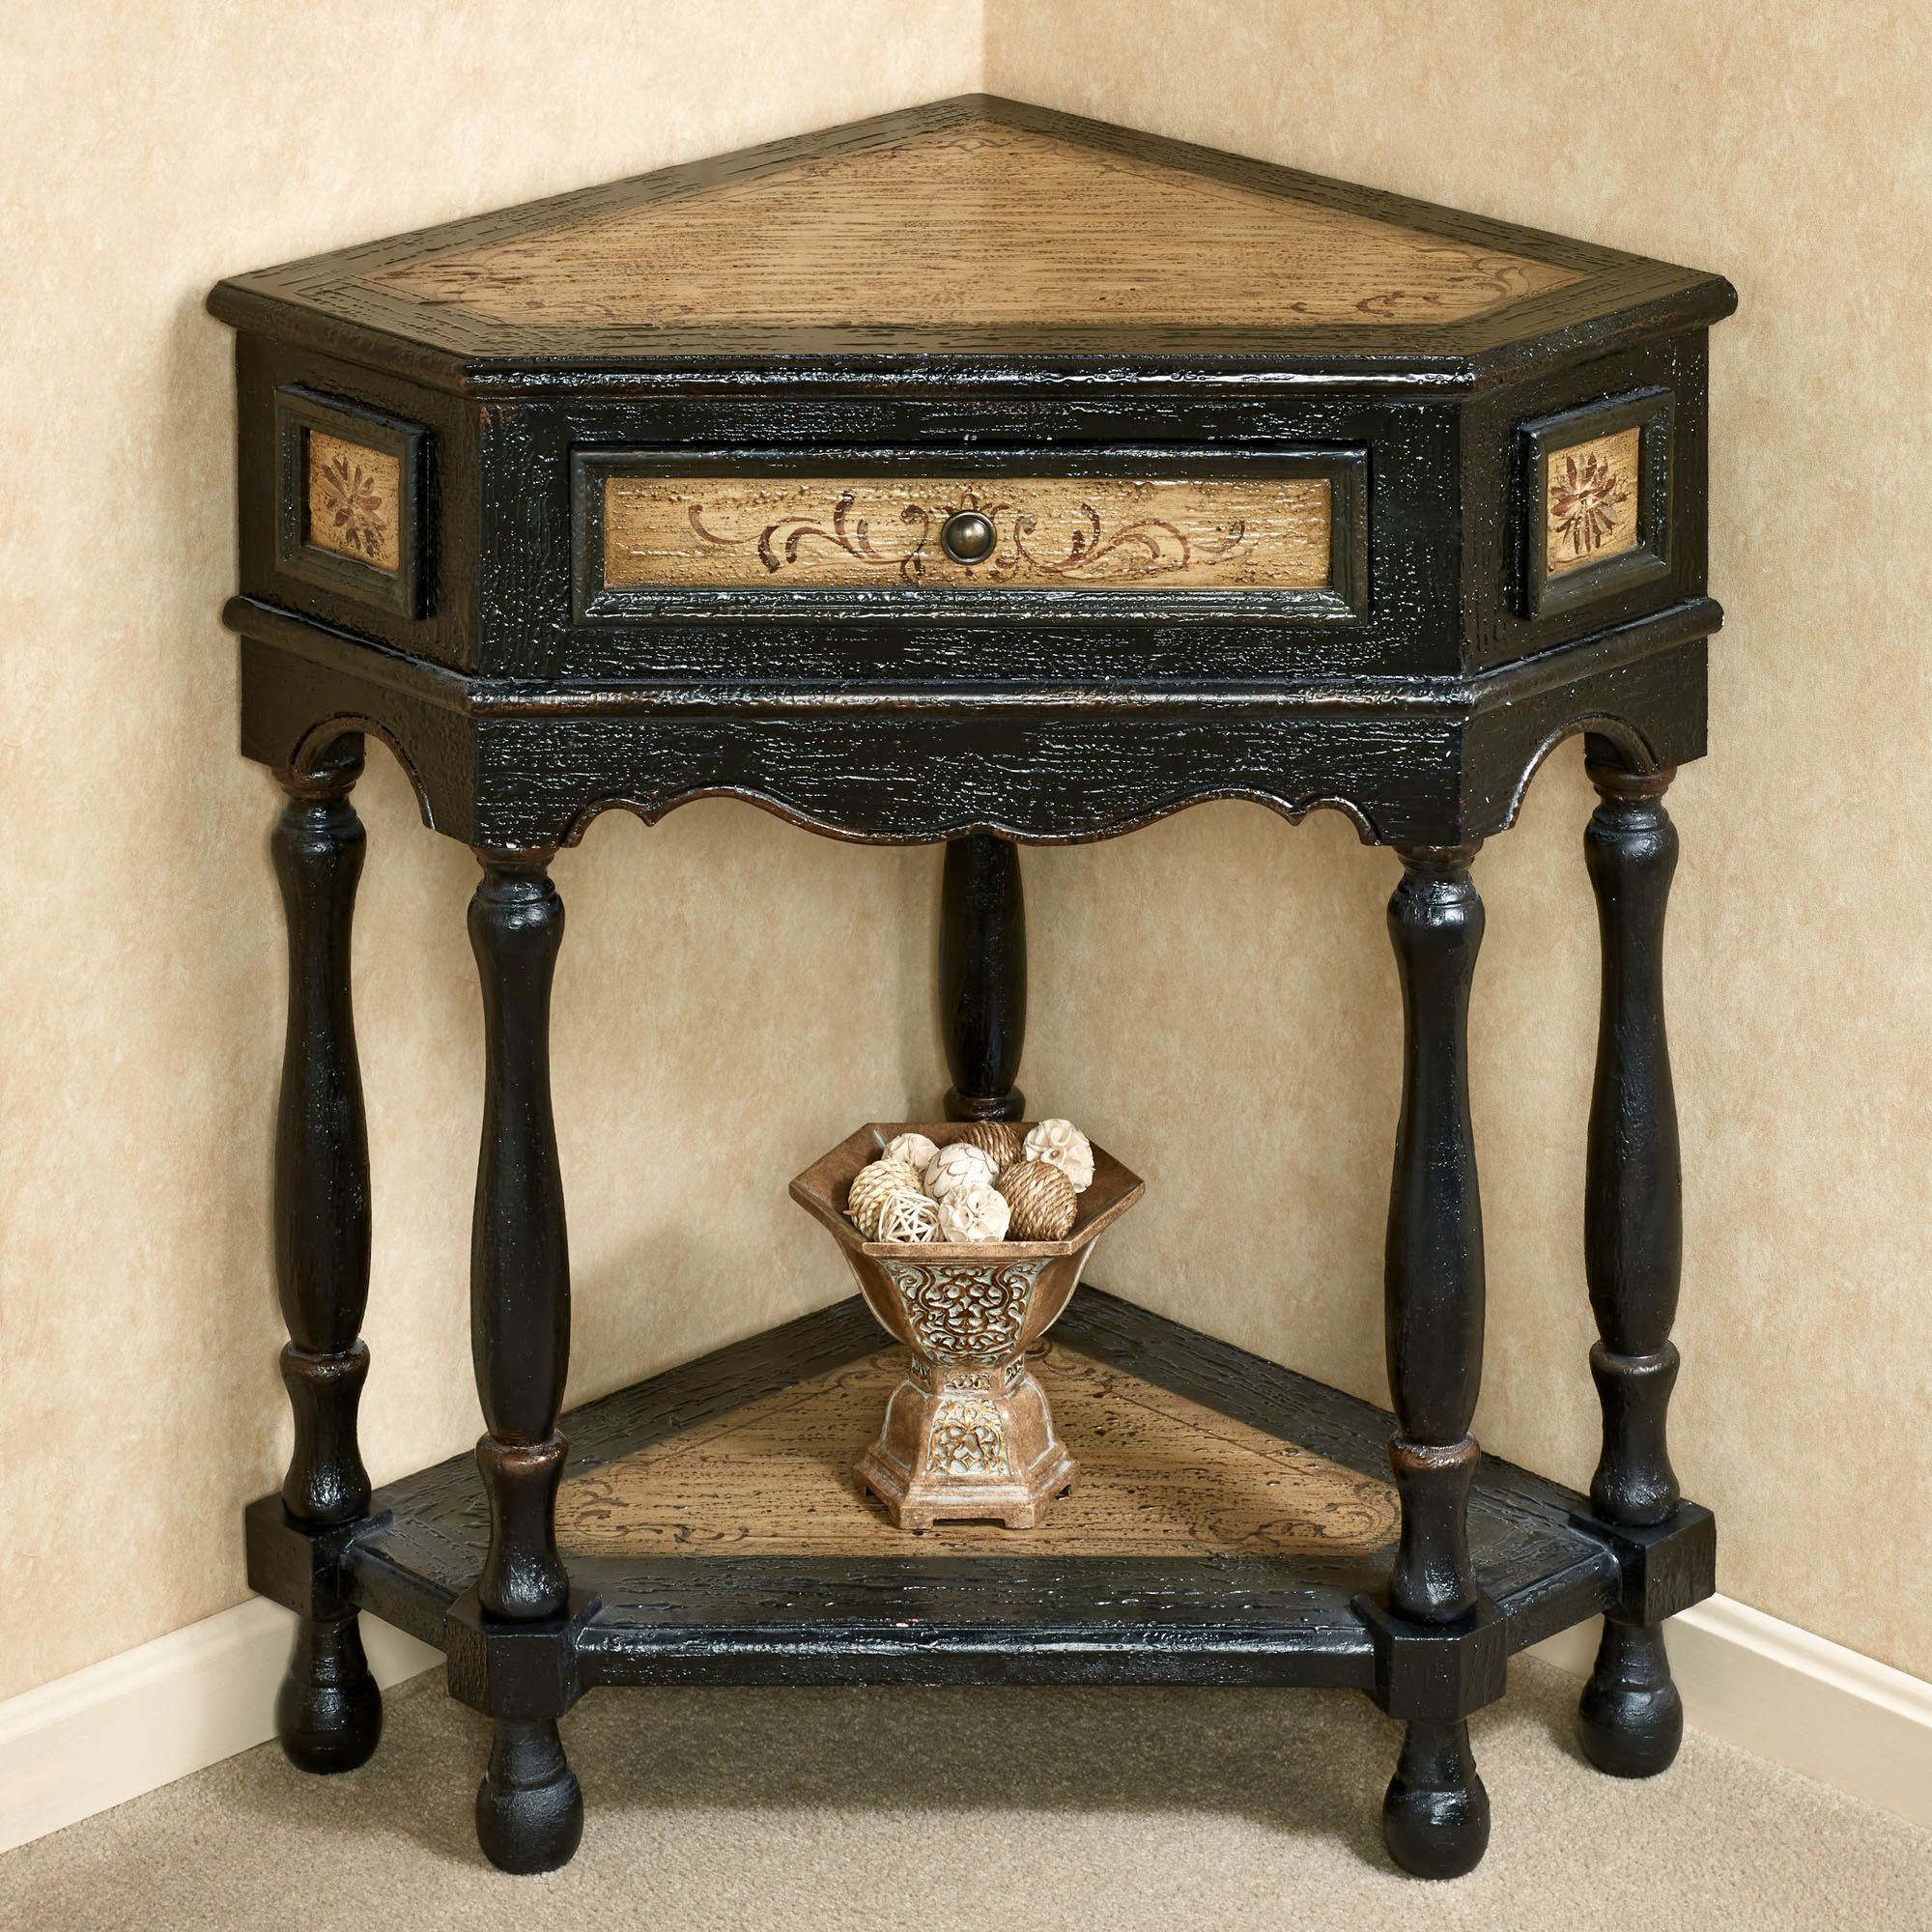 Elmhurst Black Corner Accent Table With Drawer - Black corner end table